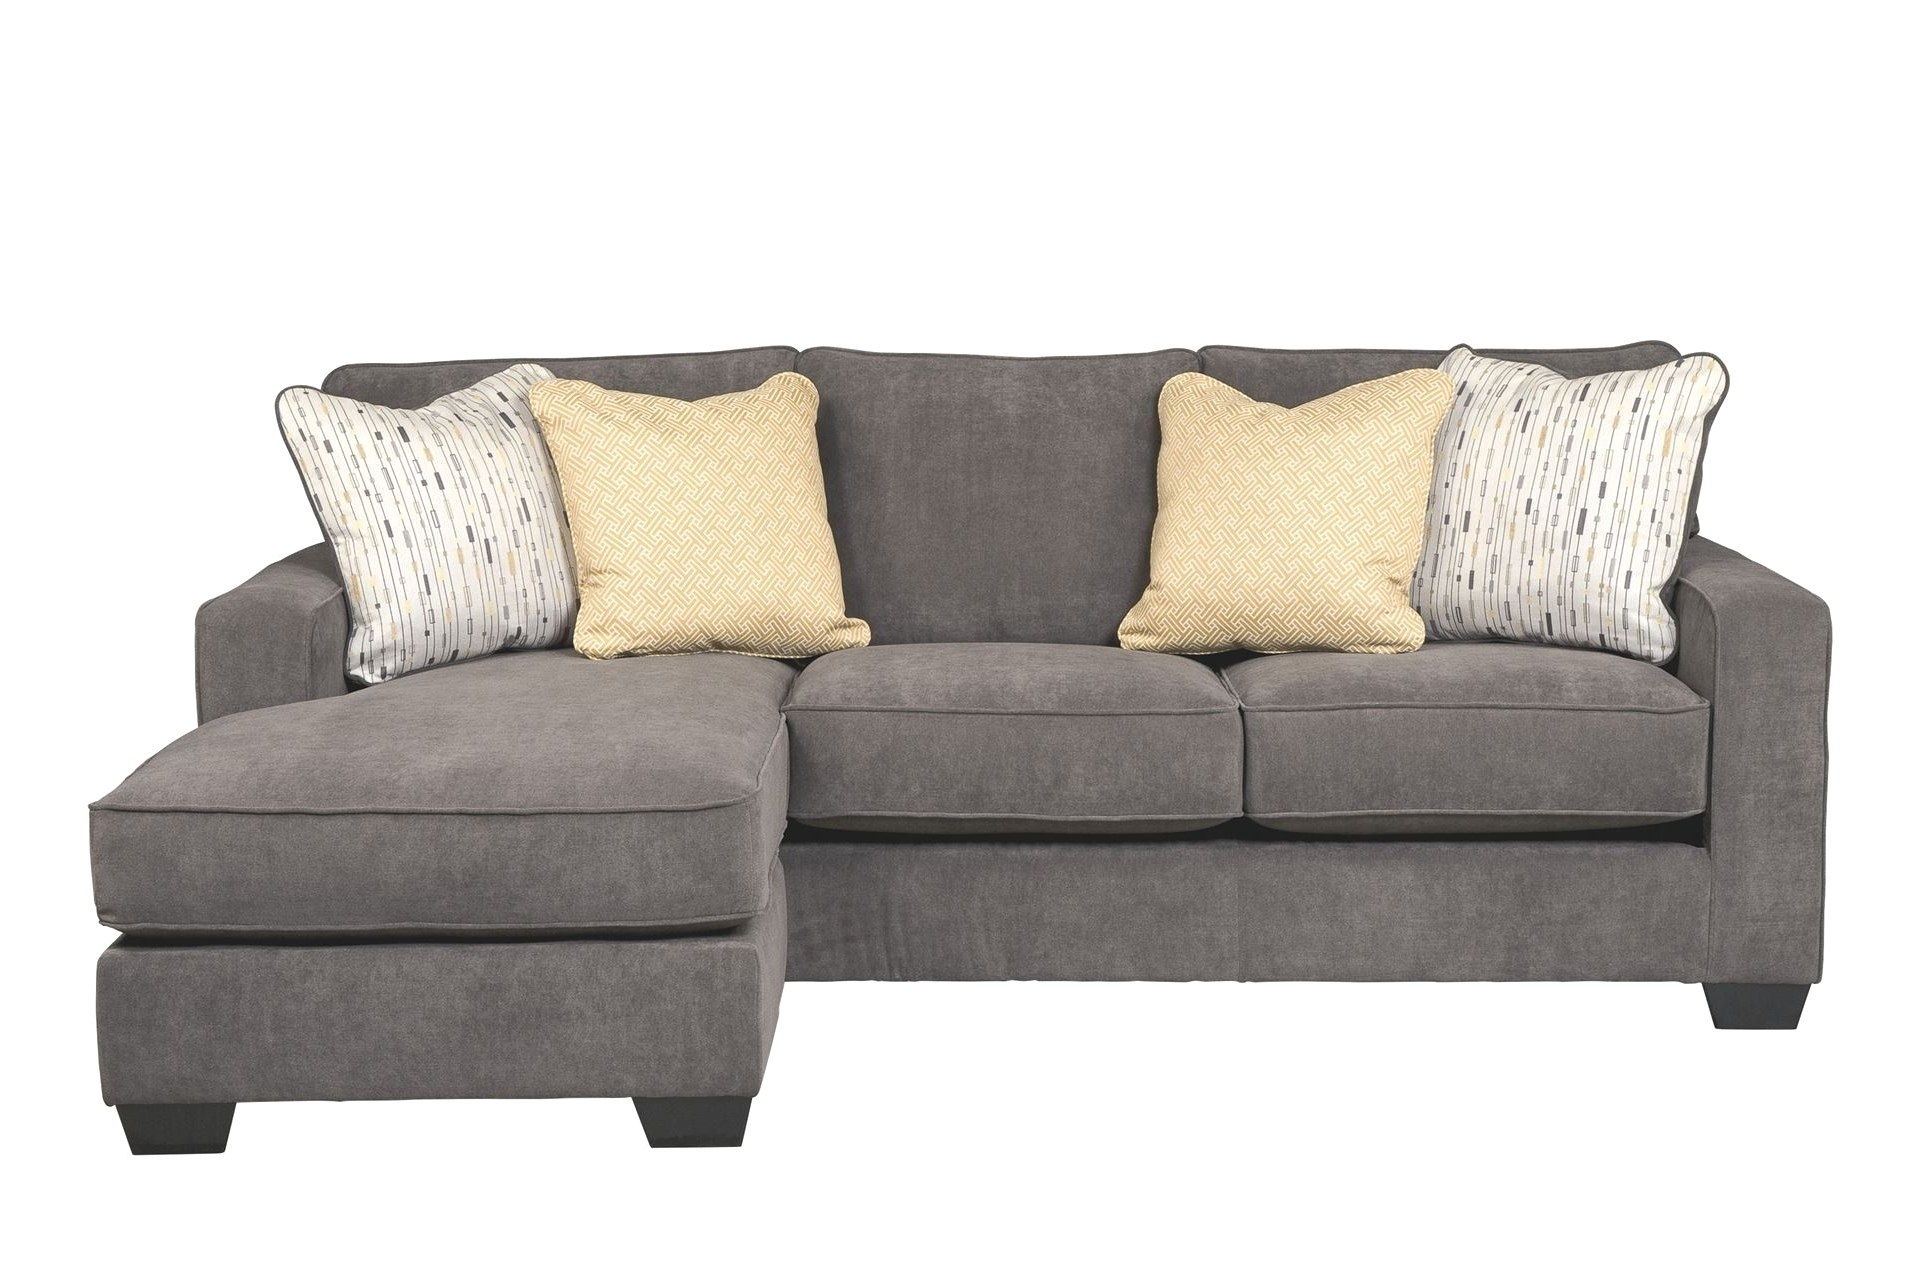 Living Spaces Sectional Couches - Tidex within Delano Smoke 3 Piece Sectionals (Image 20 of 30)